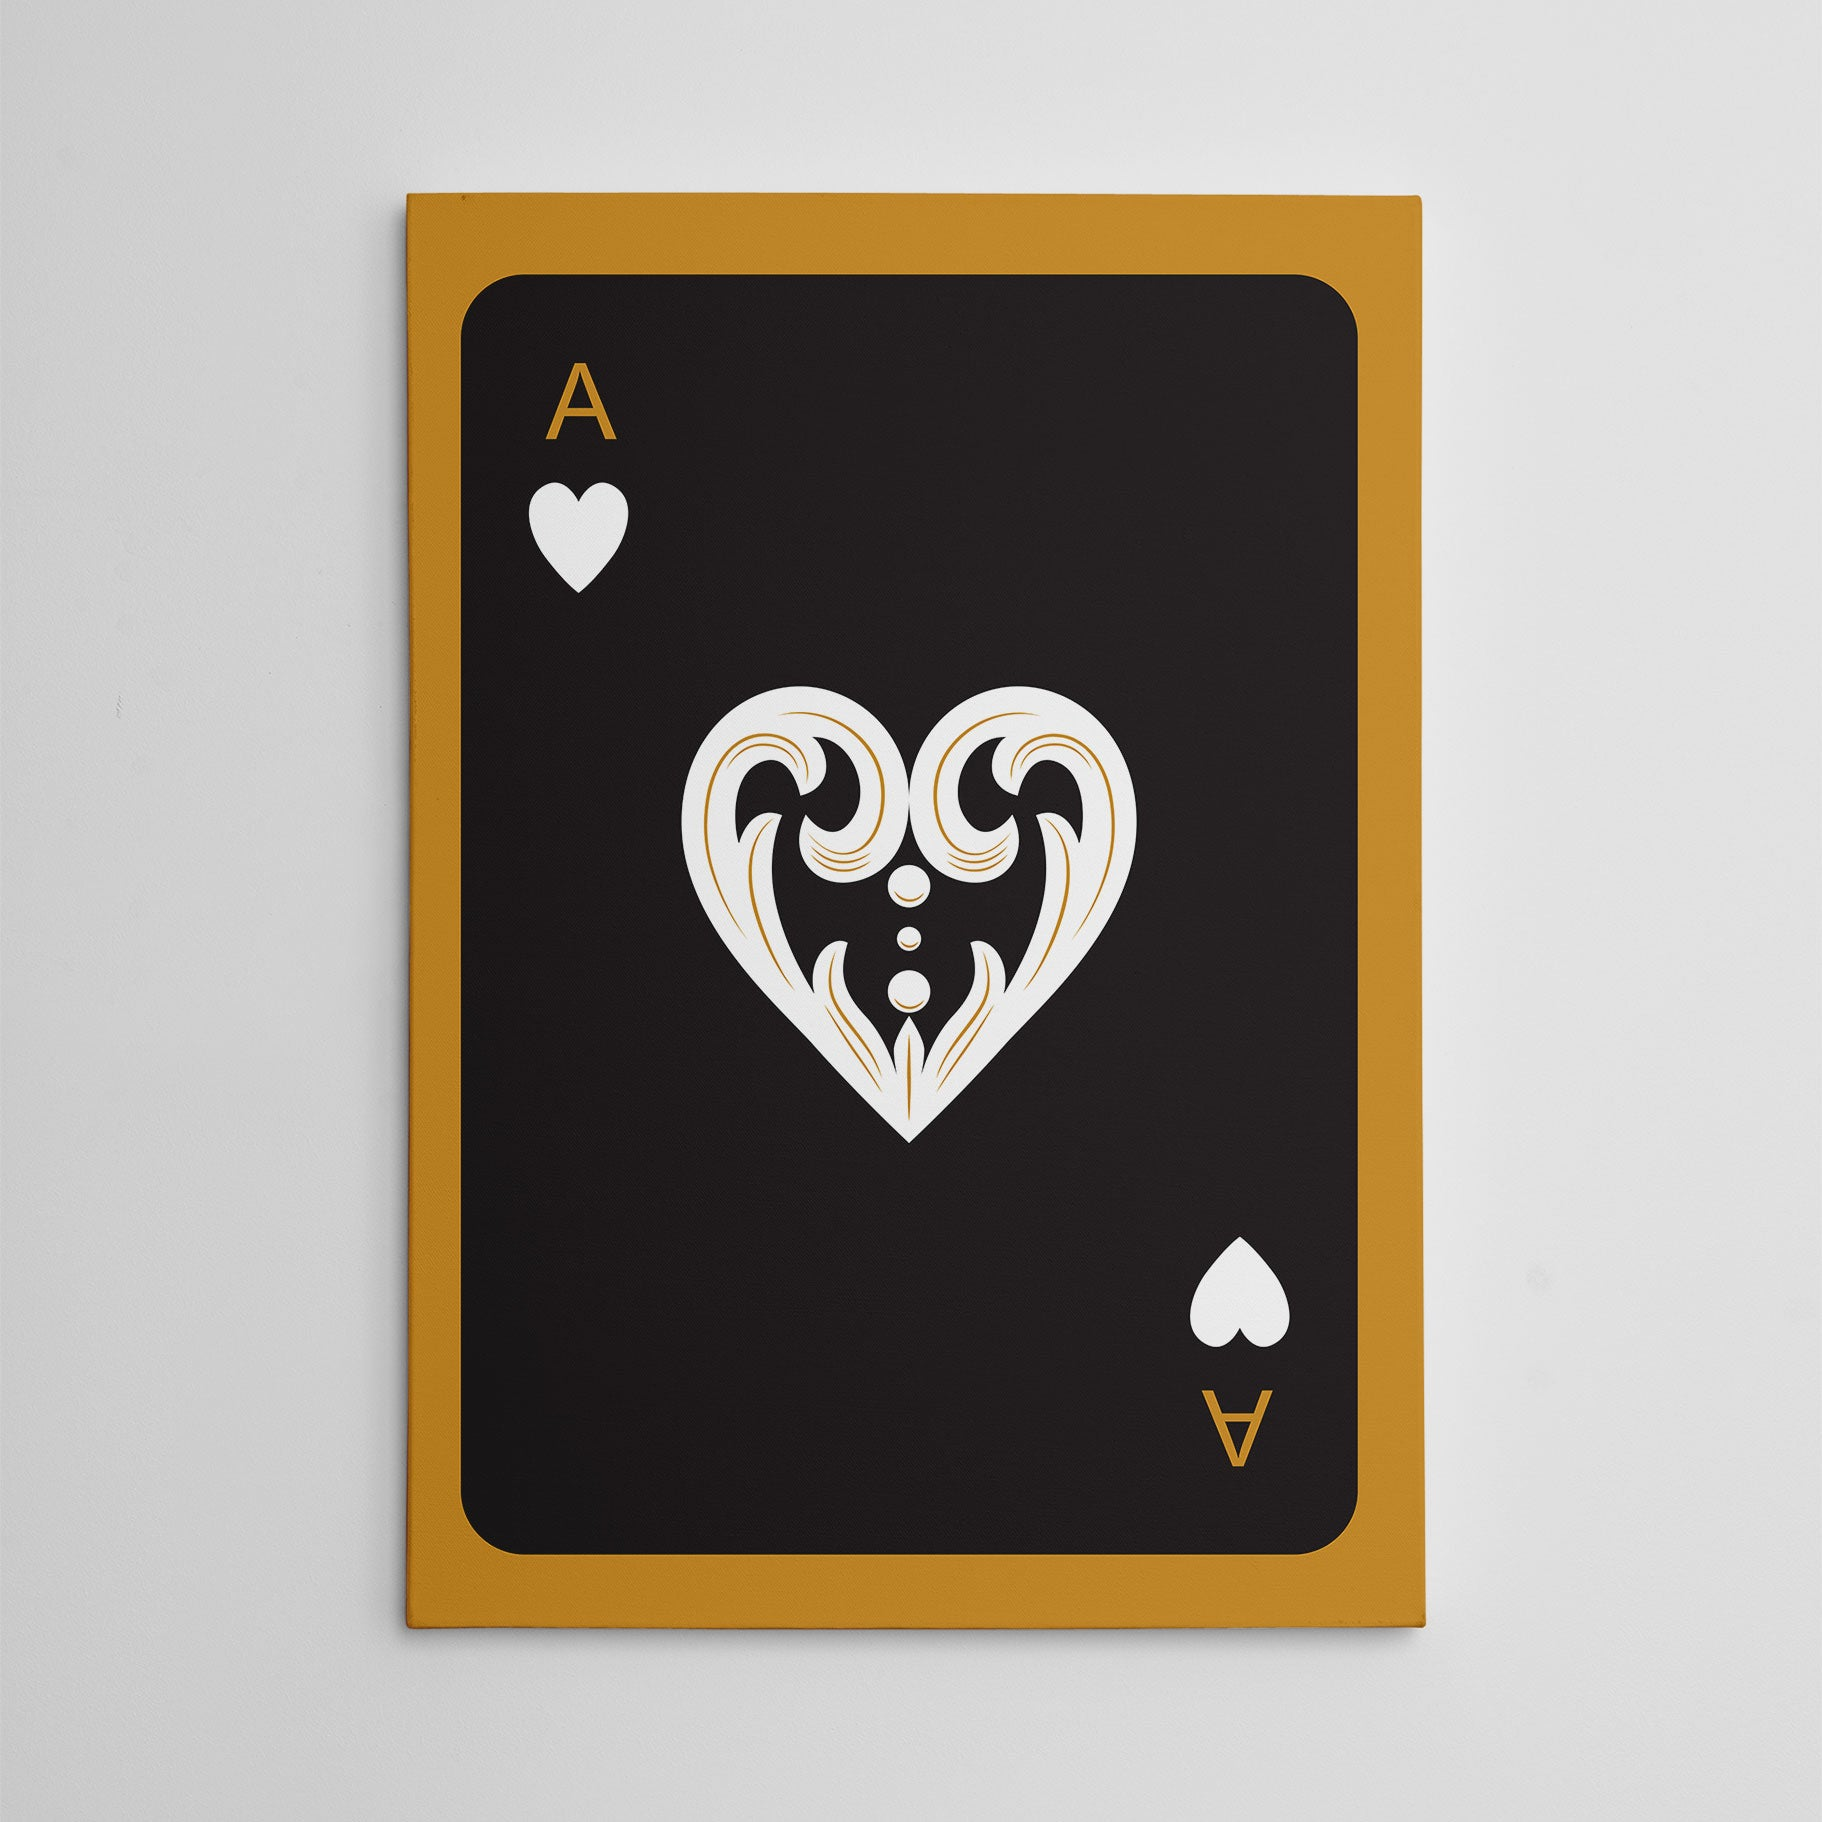 Canvas print with black ace of hearts playing card, on gold background.